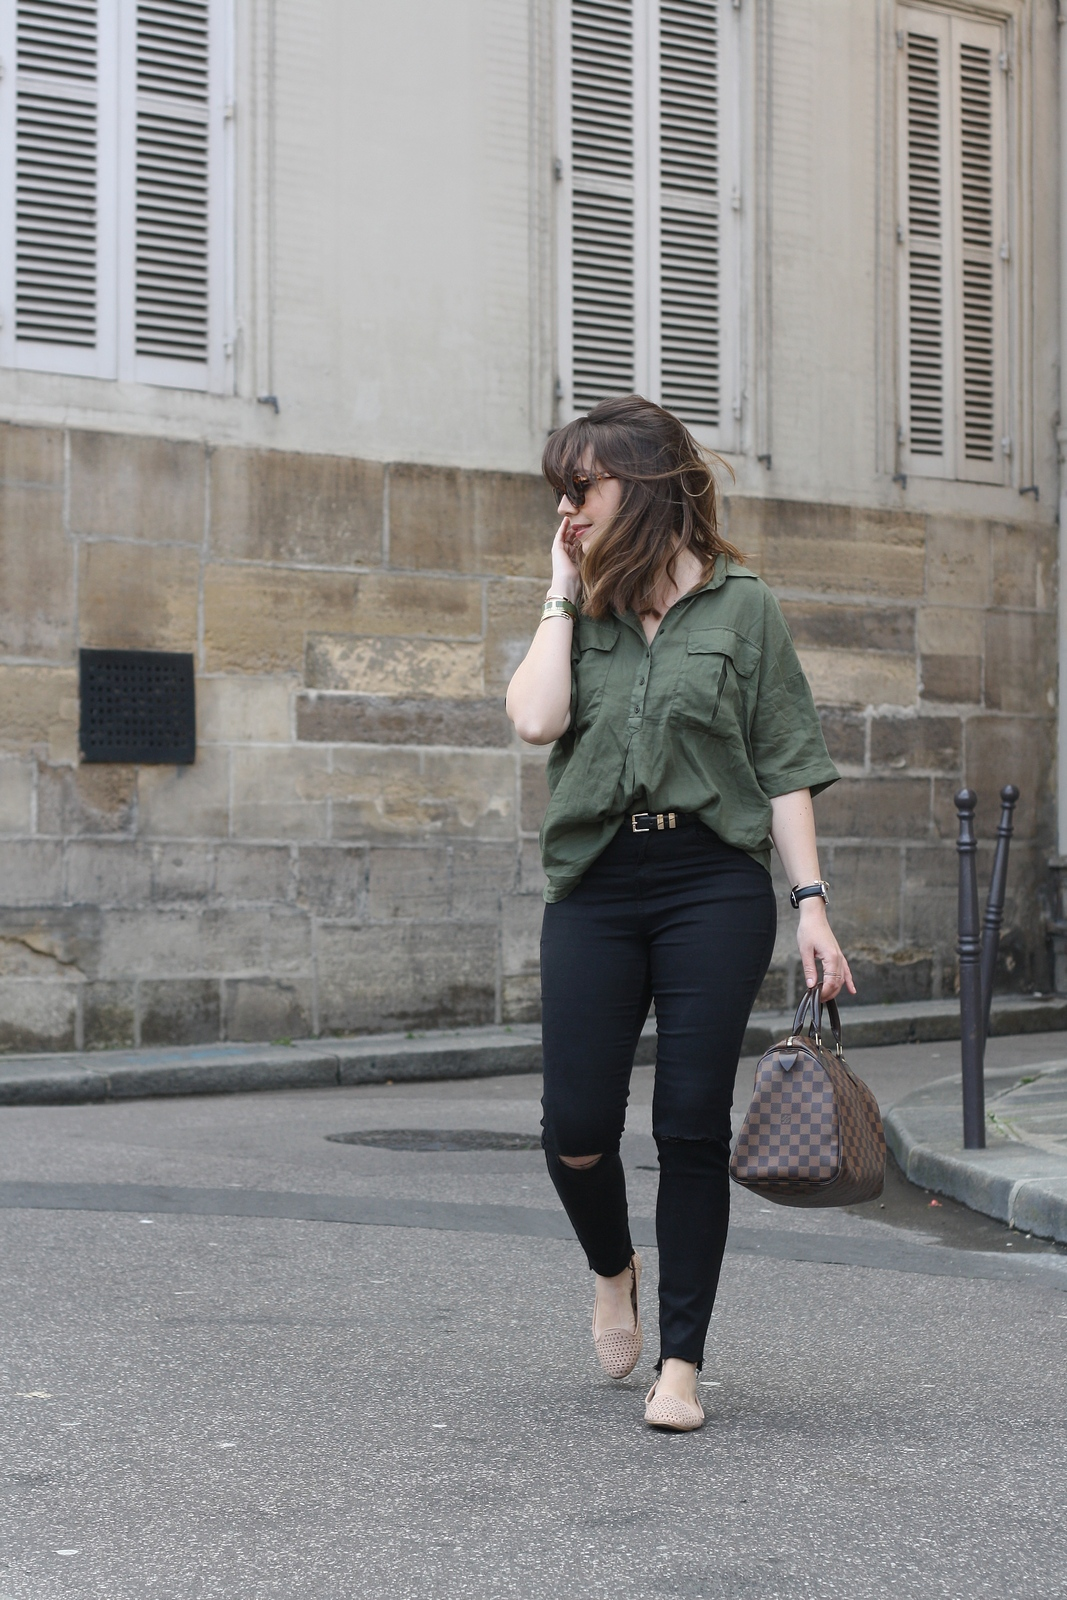 du style madame - blog mode - urban safari - stretstyle - look